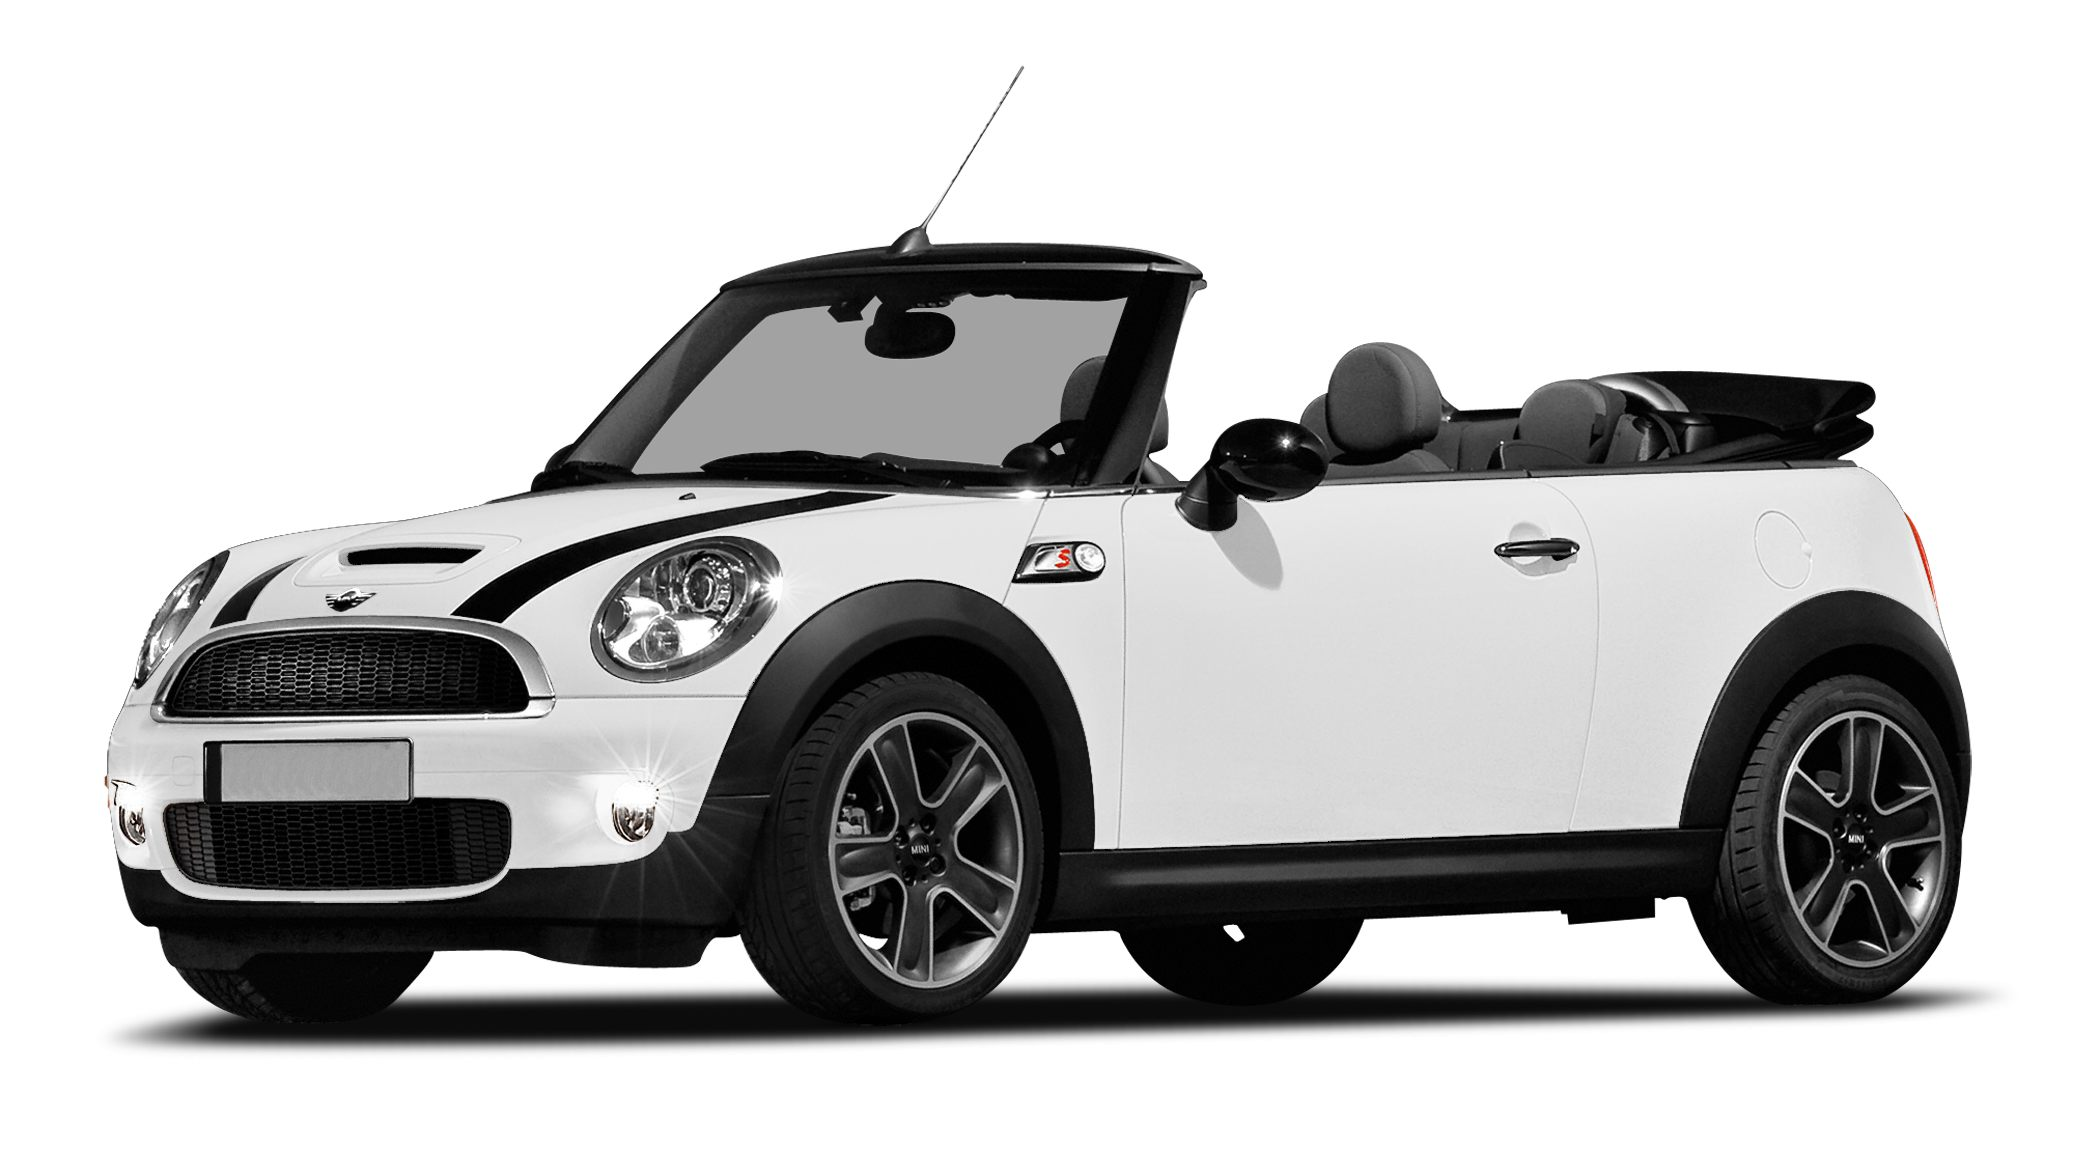 2010 MINI Cooper S Beautiful convertible with lots of power and tons of curb appeal Super fun to